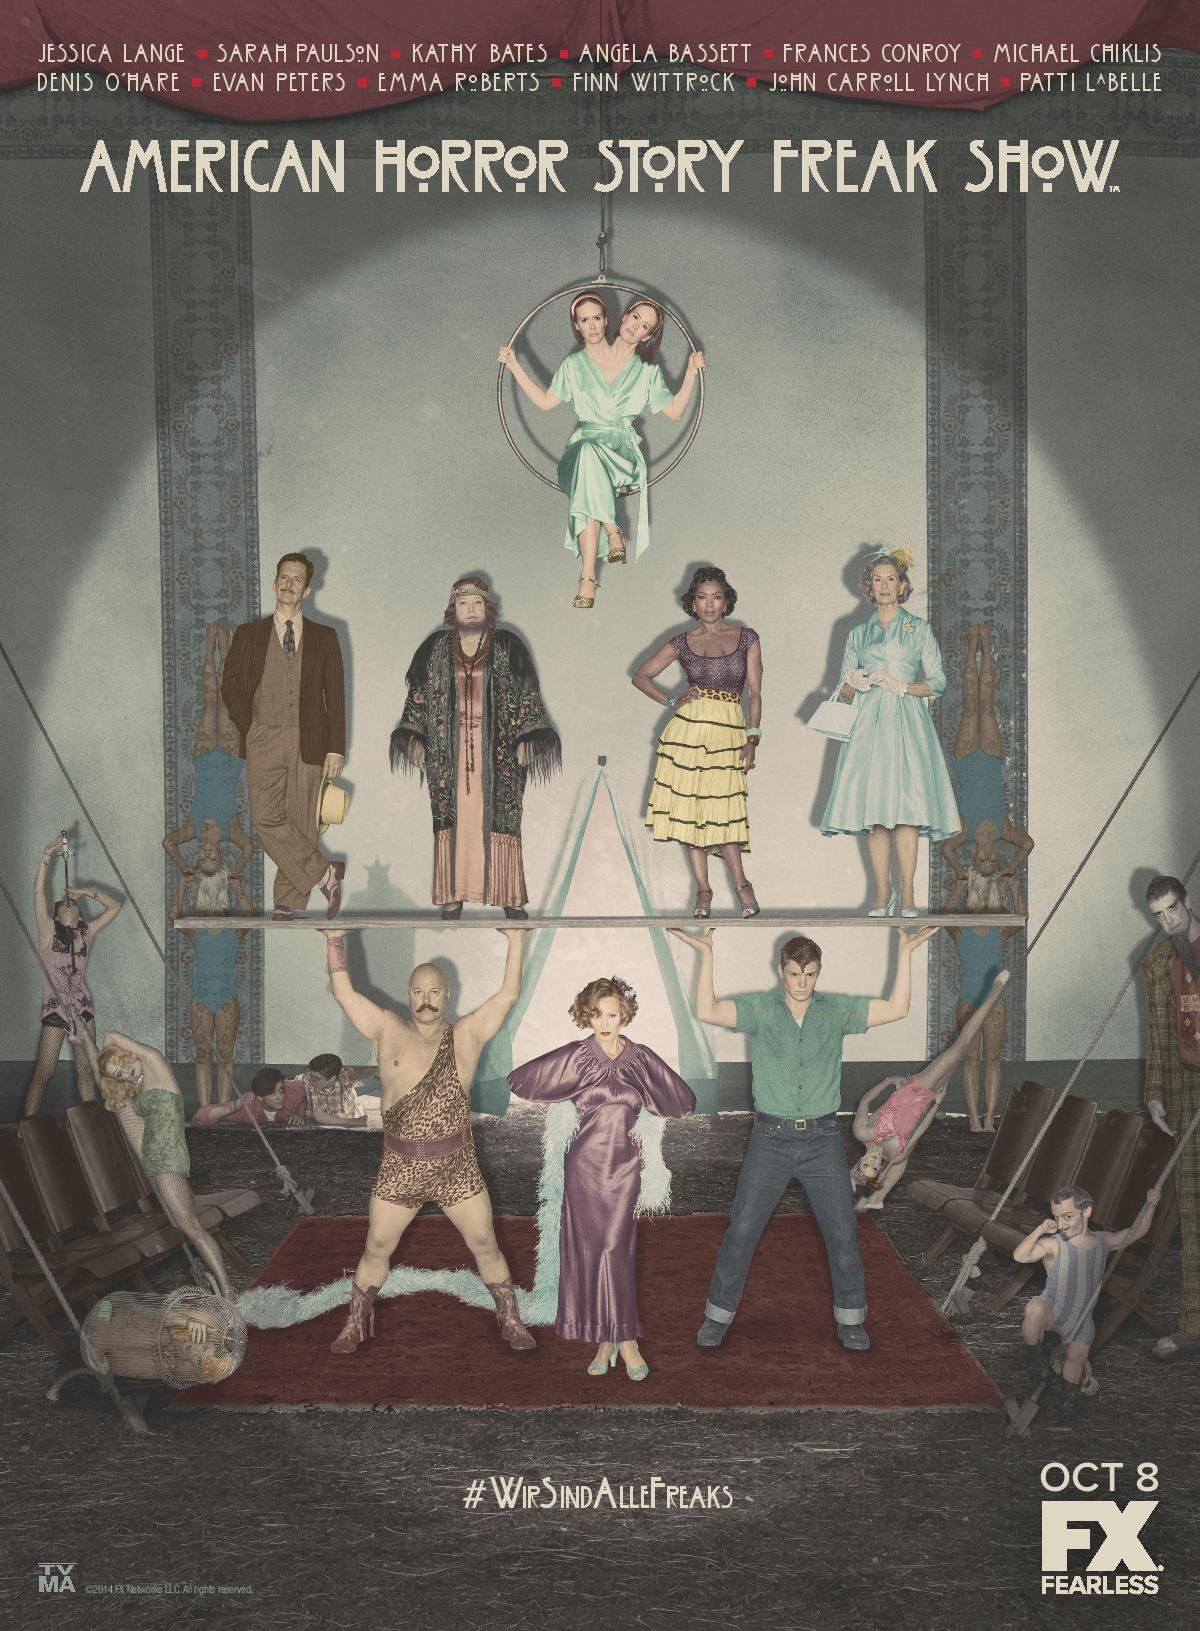 AHS Freak Show Cast Art